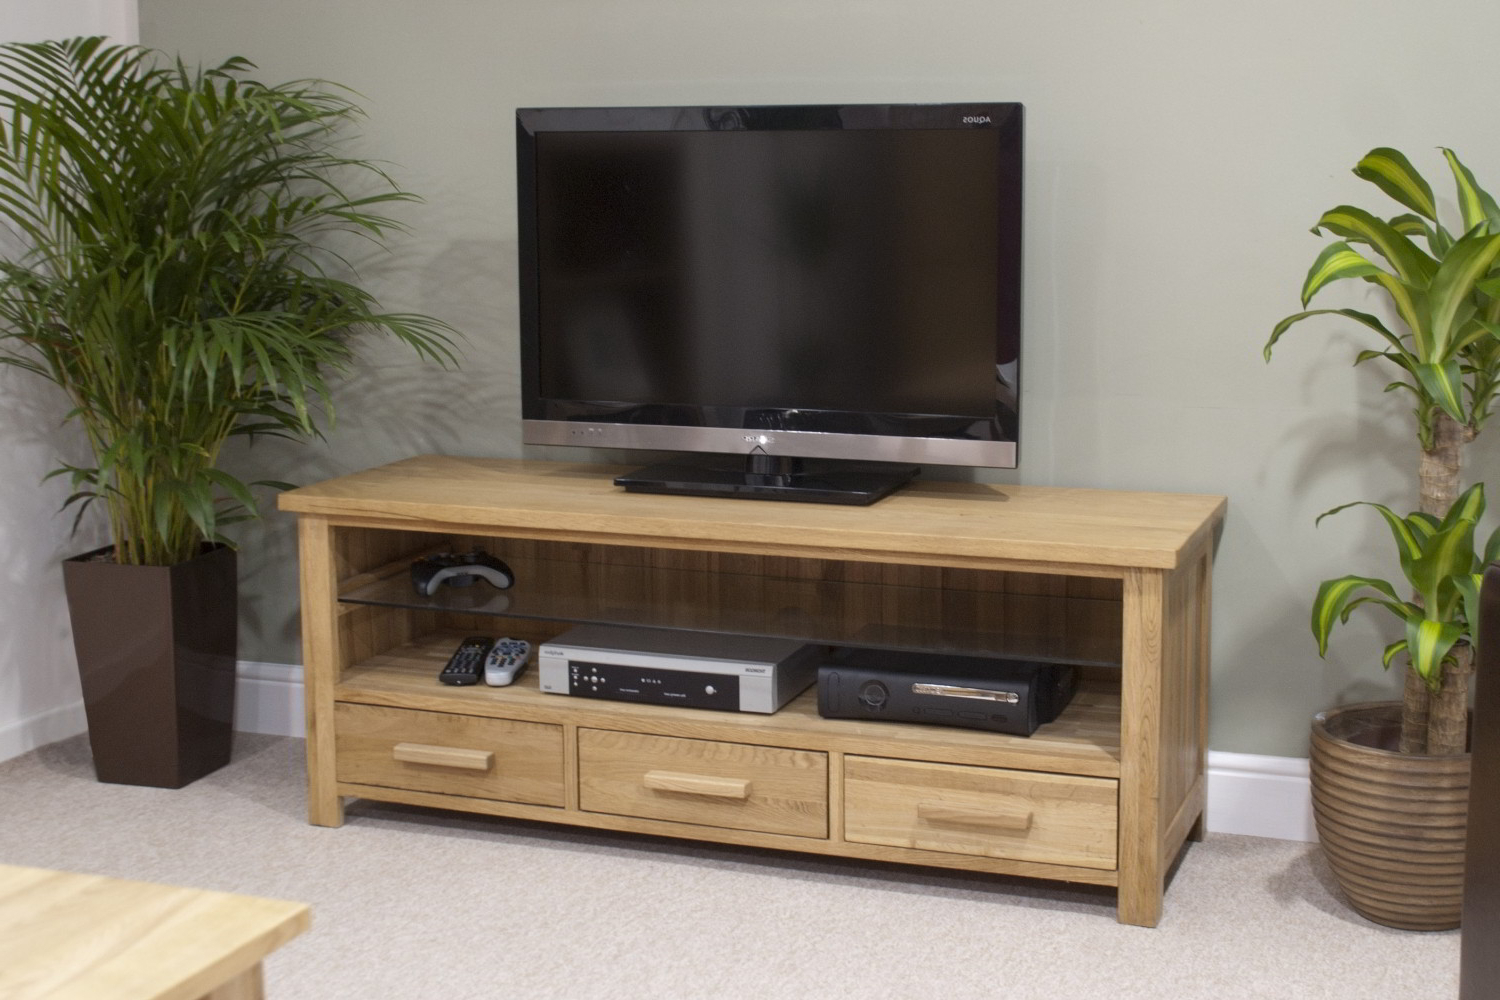 Favorite Eton Solid Oak Living Room Furniture Widescreen Tv Cabinet Stand With Widescreen Tv Stands (View 8 of 20)